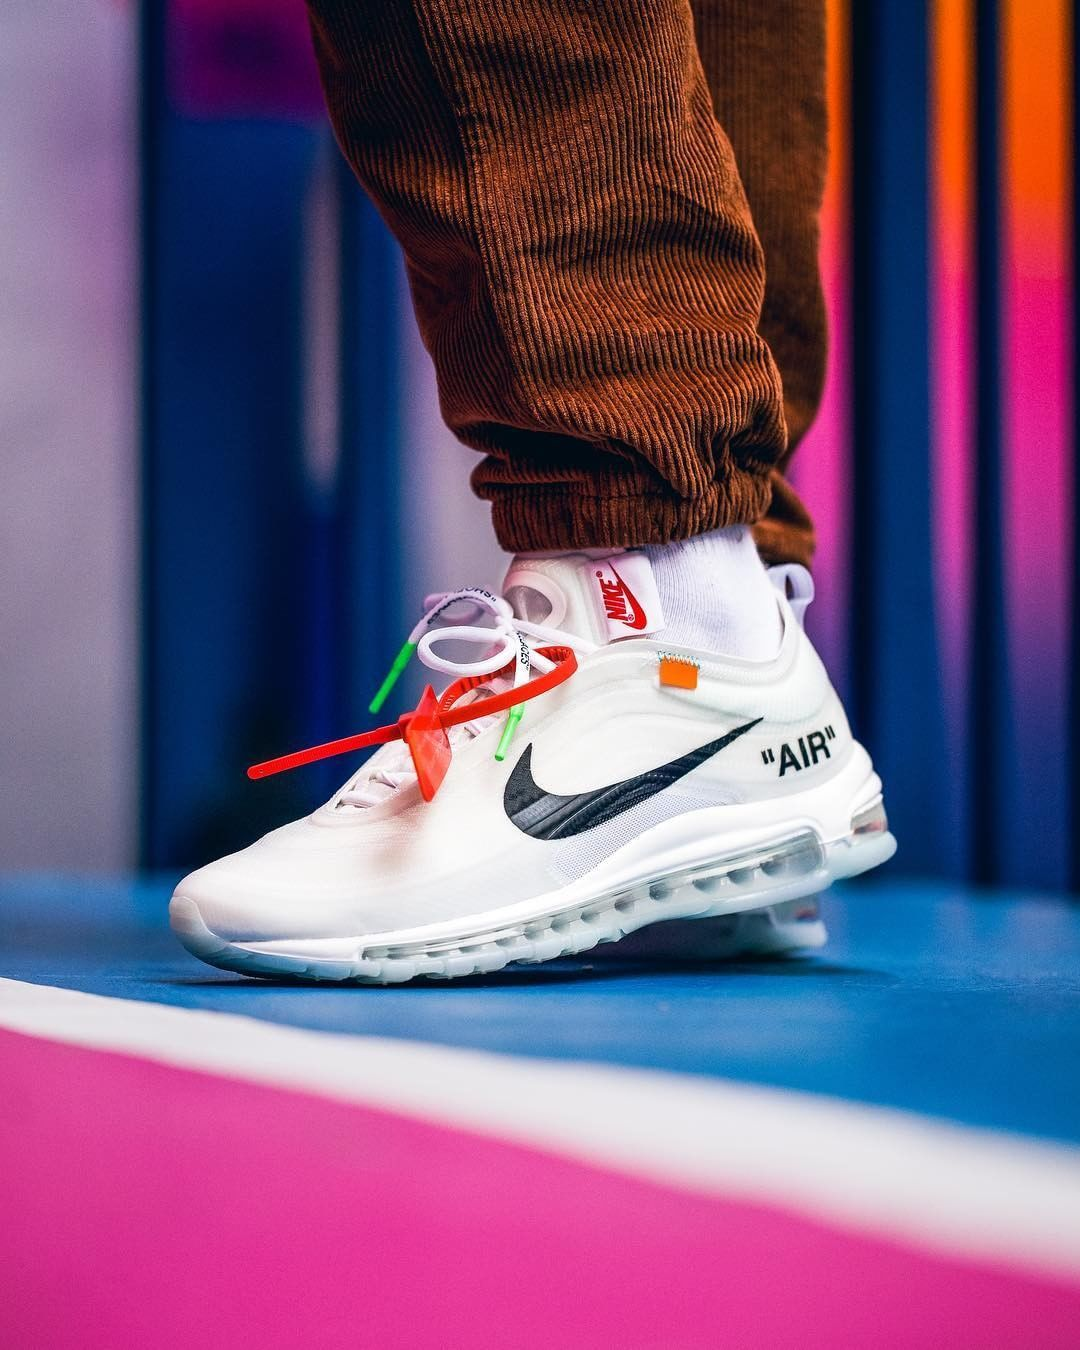 5c473ba982 OFF WHITE x Nike Air Max 97 Kojo Funds | @flletlondon #filetfamilia ...